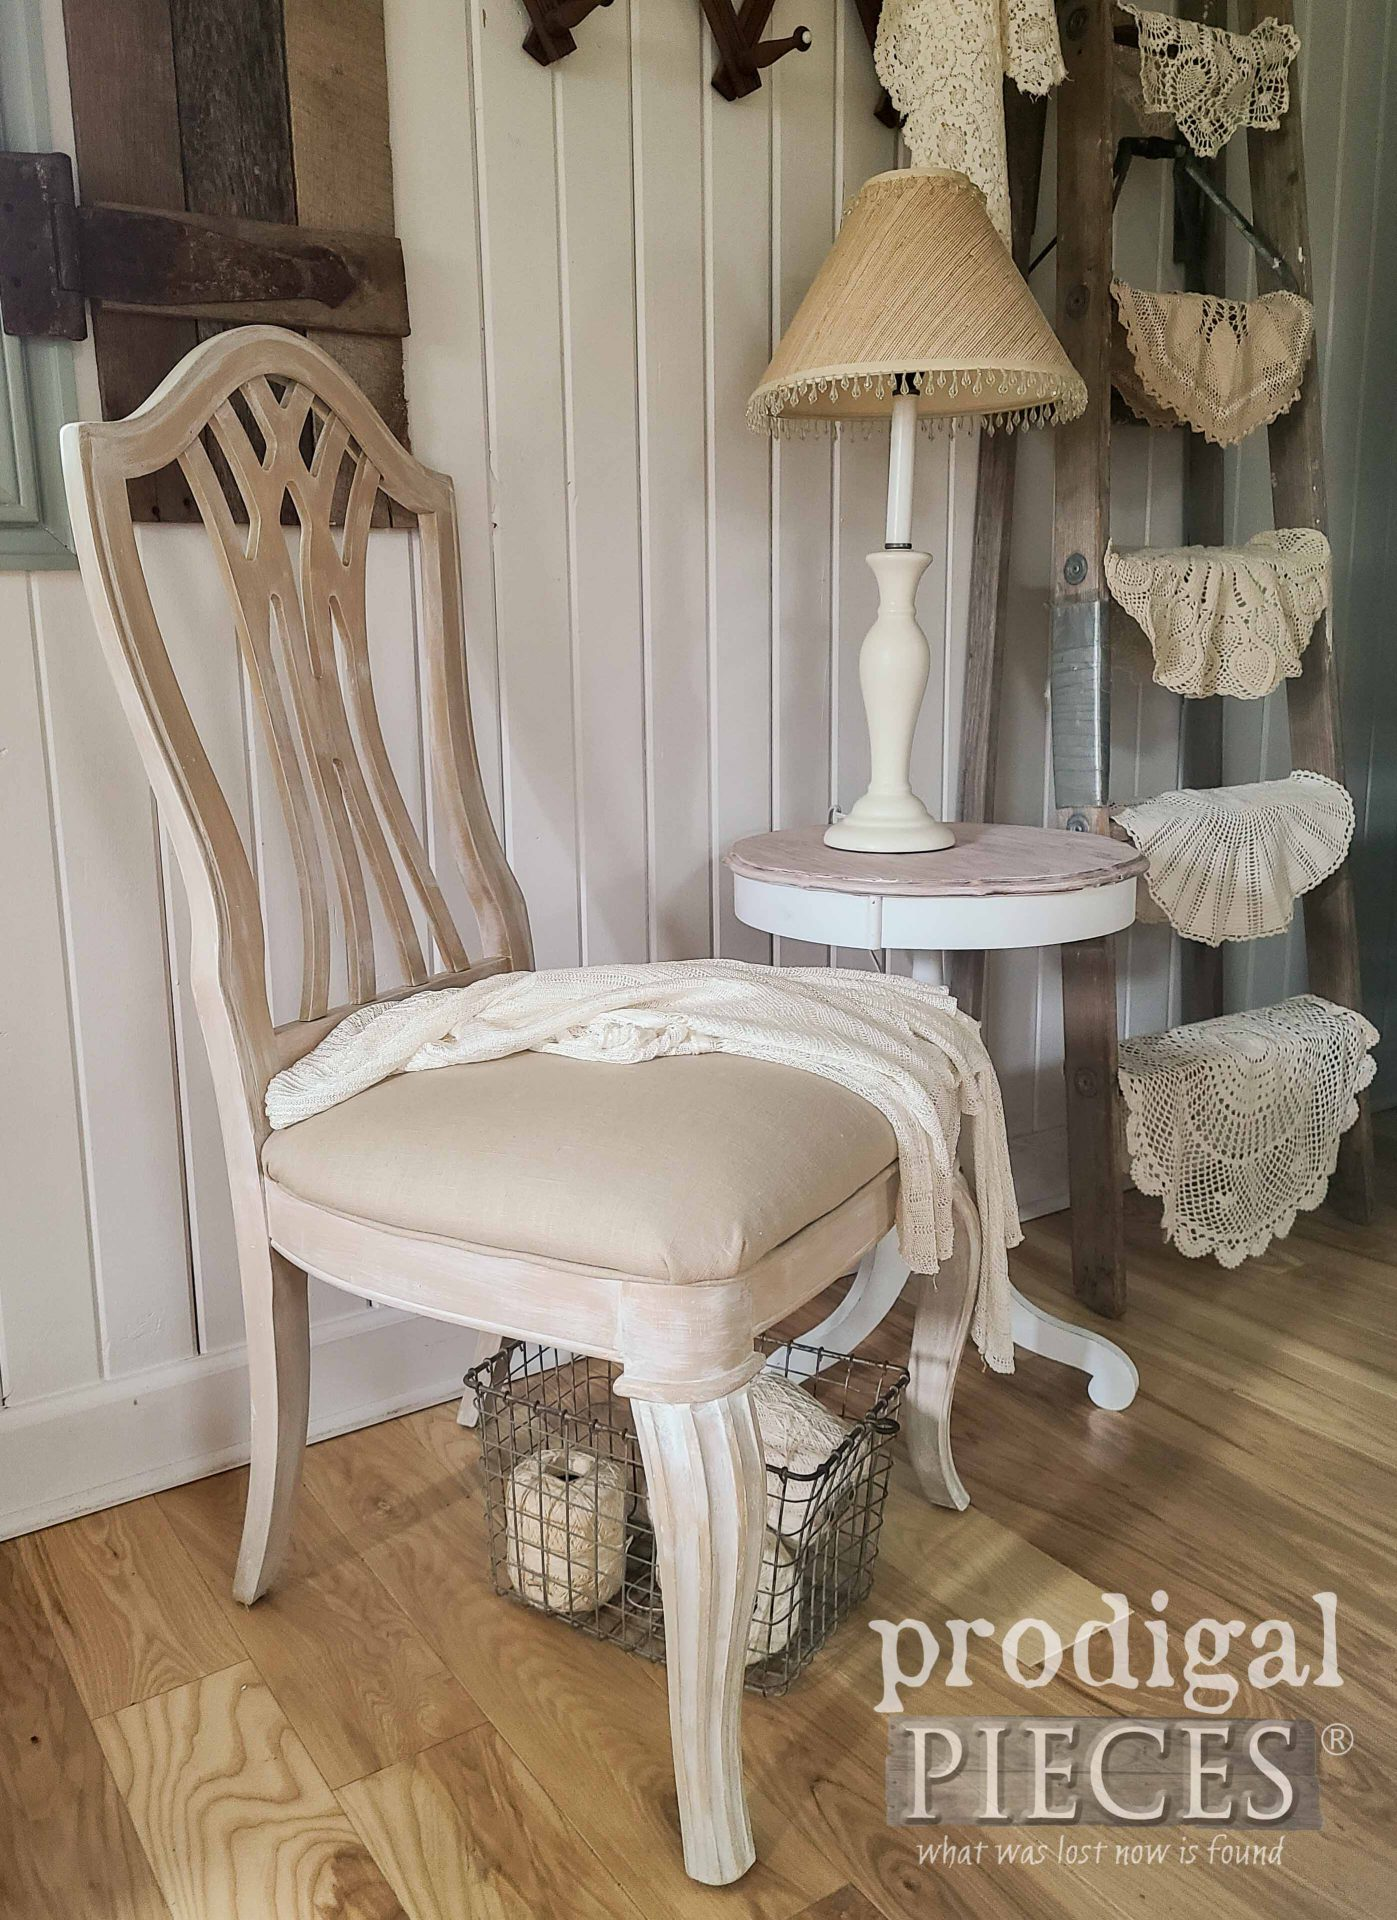 Vintage Stanley Splat Back Chair with Linen Upholstery by Larissa of Prodigal Pieces | prodigalpieces.com #prodigalpieces #furniture #home #diy #homedecor #farmhouse